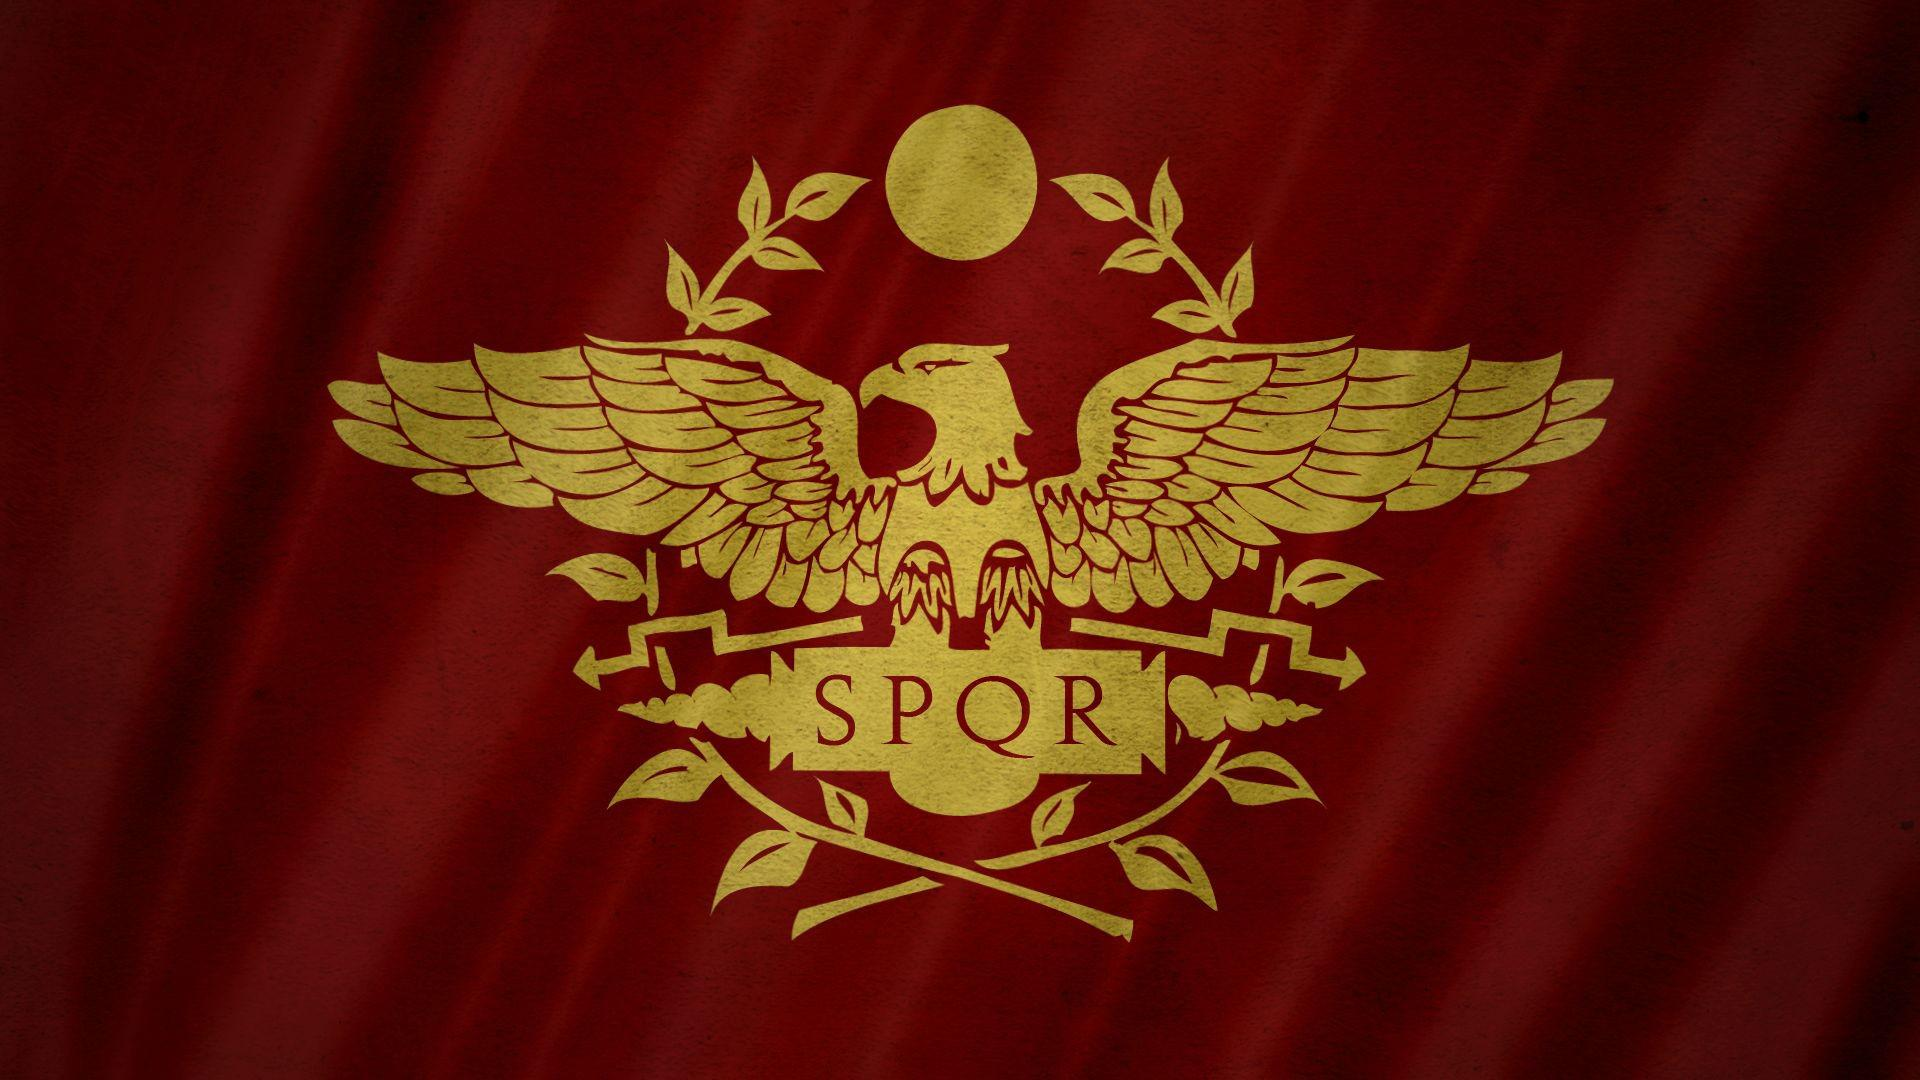 Roman Empire Wallpapers Wallpaper